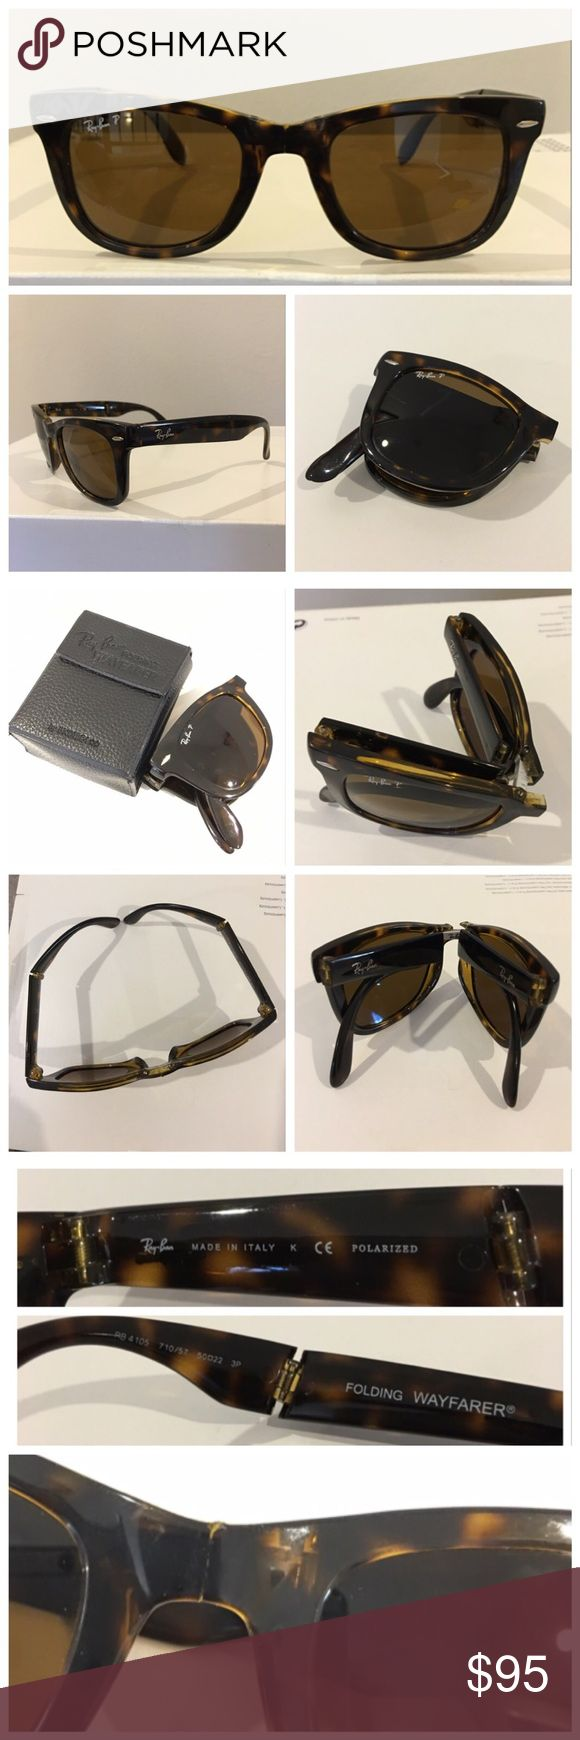 Authentic folding RAY BAN Wayfarer sunglasses Authentic folding RAY BAN Wayfarer sunglasses in brown tortoise shell color.  In excellent condition except for noted chip on front bridge where glasses fold in half  (see photo, hardly noticeable in person), very slight wear on arms. Lens inscribed with Ray-Ban P and etched with signature RB. Made in Italy, model RB 4105 size 50. Comes with case, slightly worn. Pls ask any questions you may have before purchasing and pls acknowledge exception as…